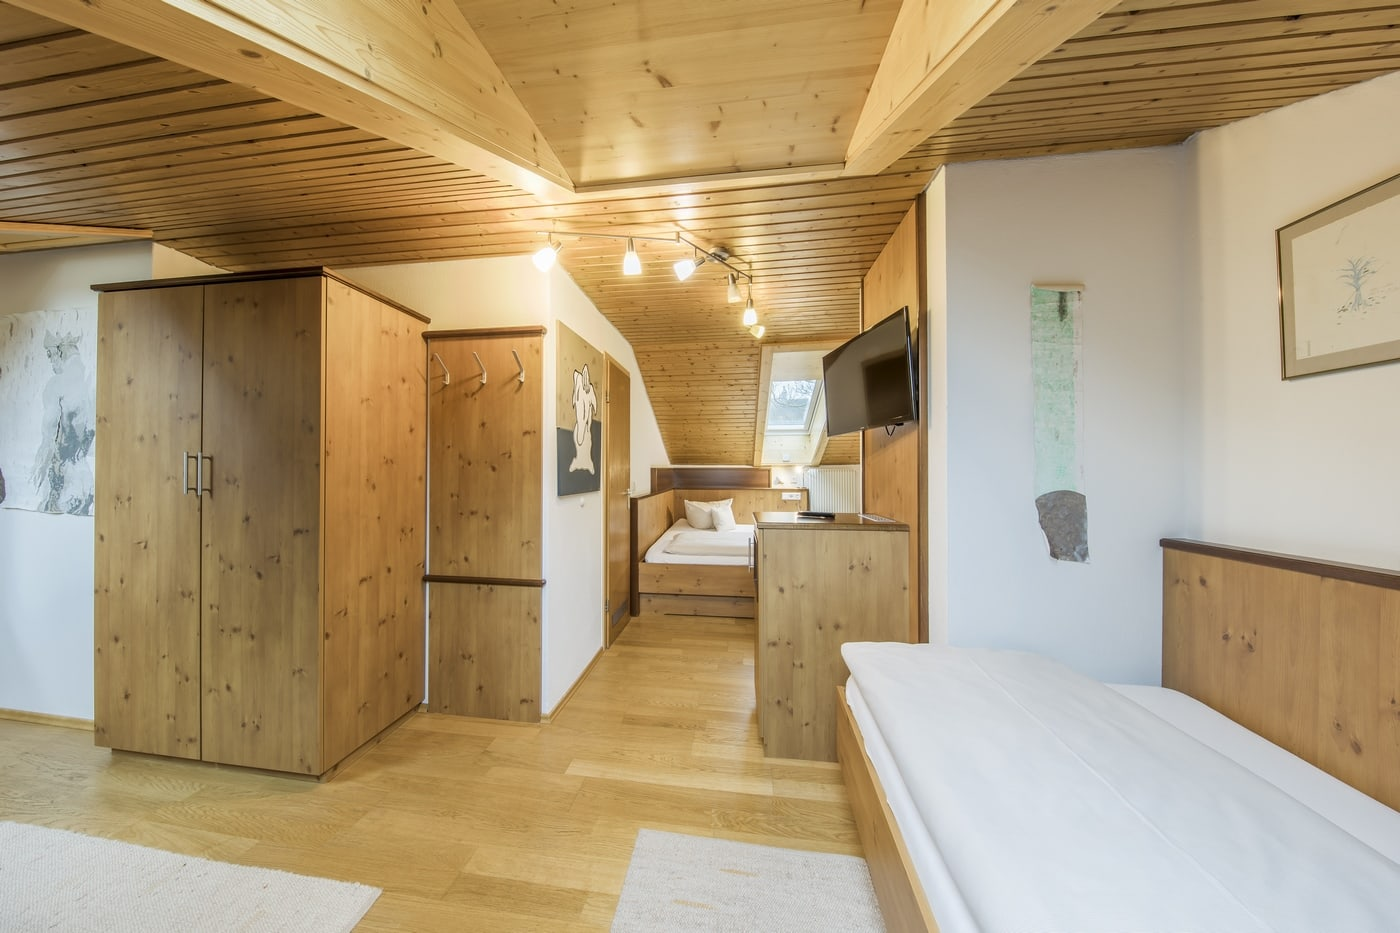 This room in the Hotel Brunner is a family or triple room and was diversely designed by Hermann-Maria Prätorius.